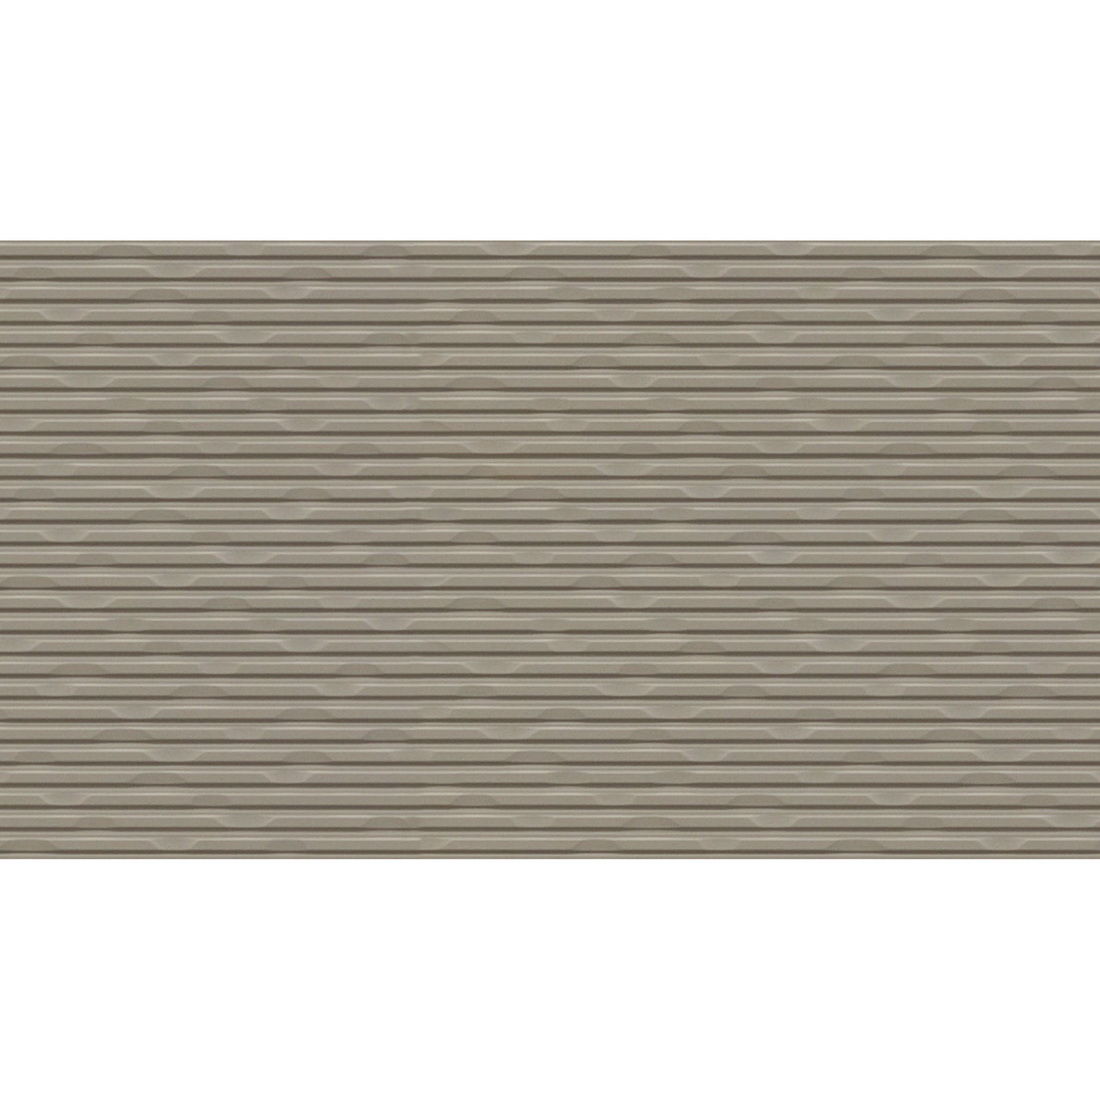 Territory Steppe 16x455x3030mm Panel Tundra 2 Sheet